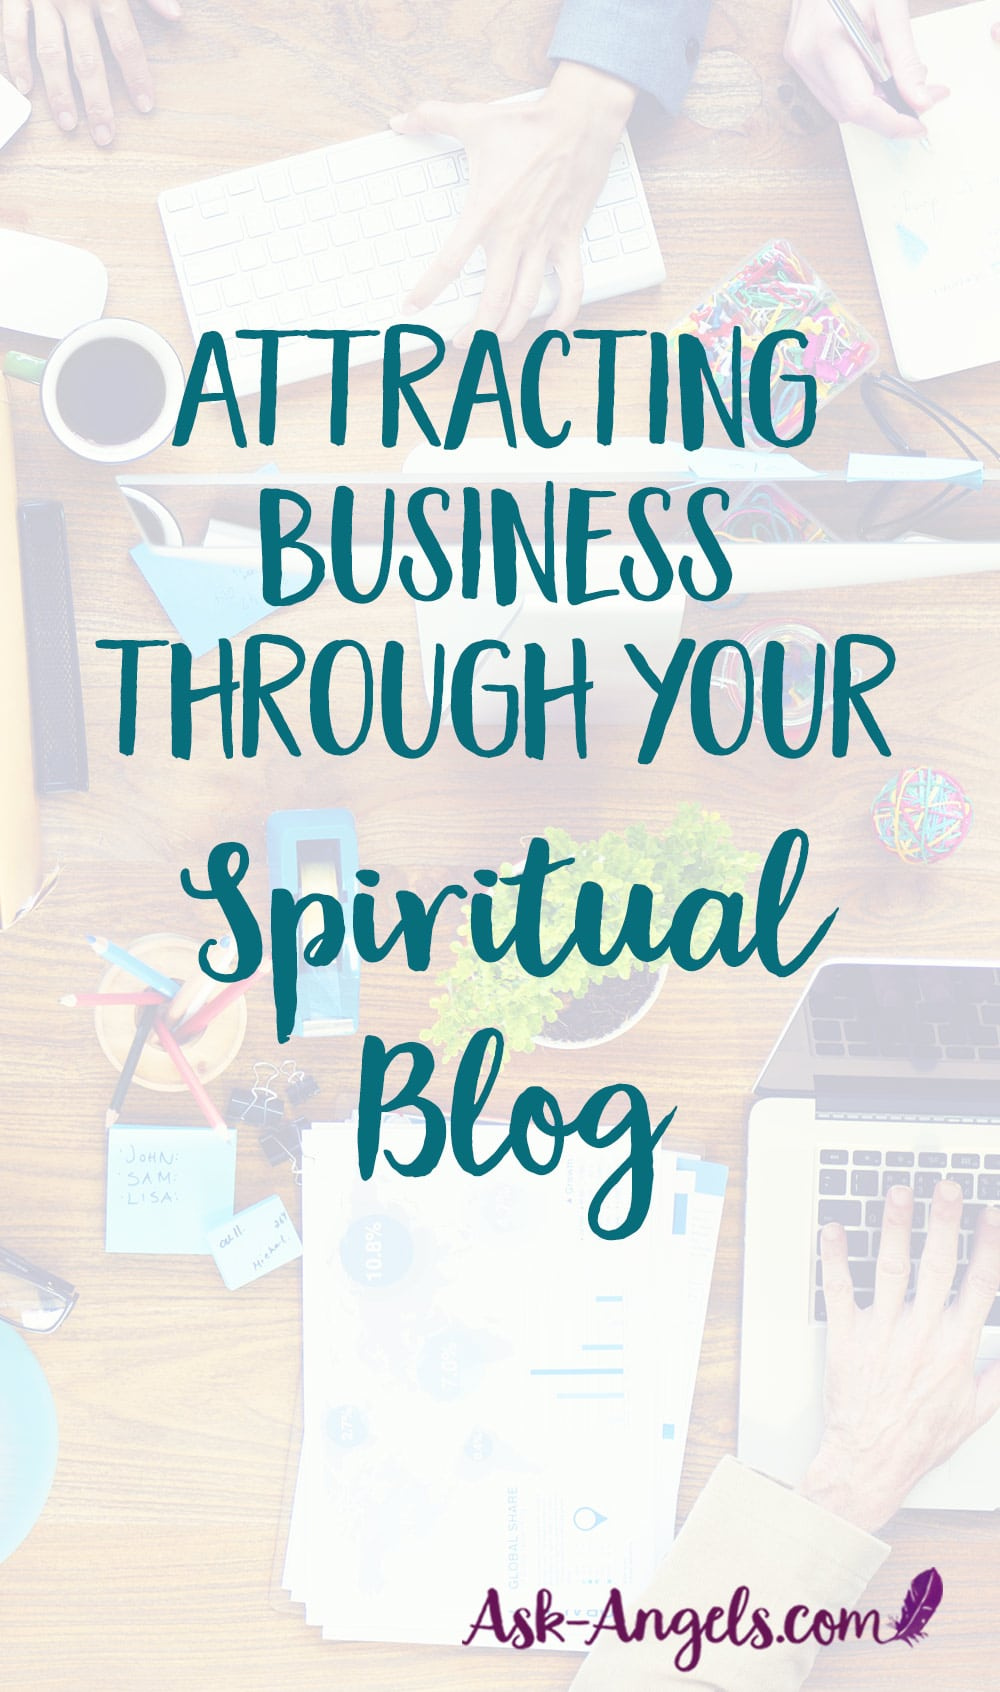 Attracting Business Through Your Spiritual Blog